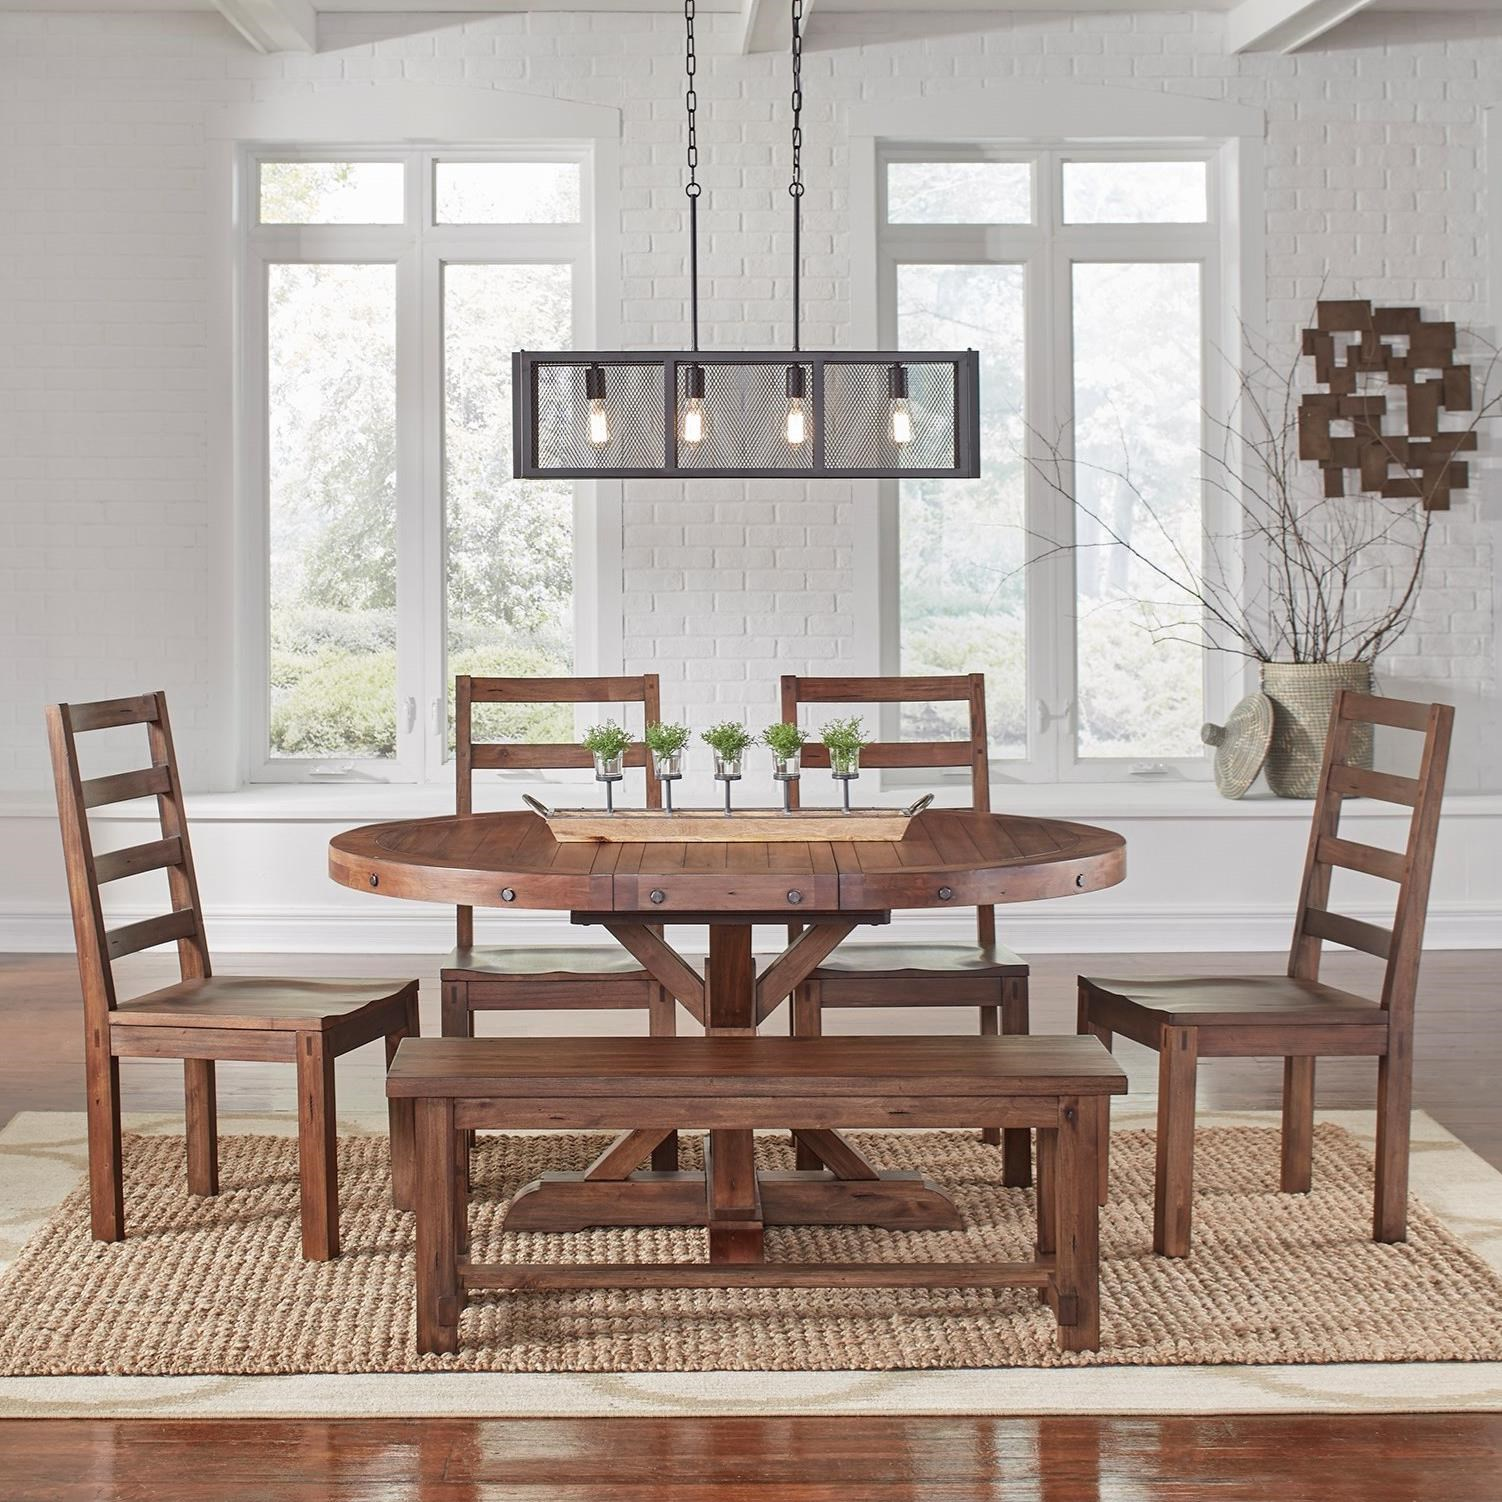 Anacortes 6 Piece Dining Set by AAmerica at SuperStore